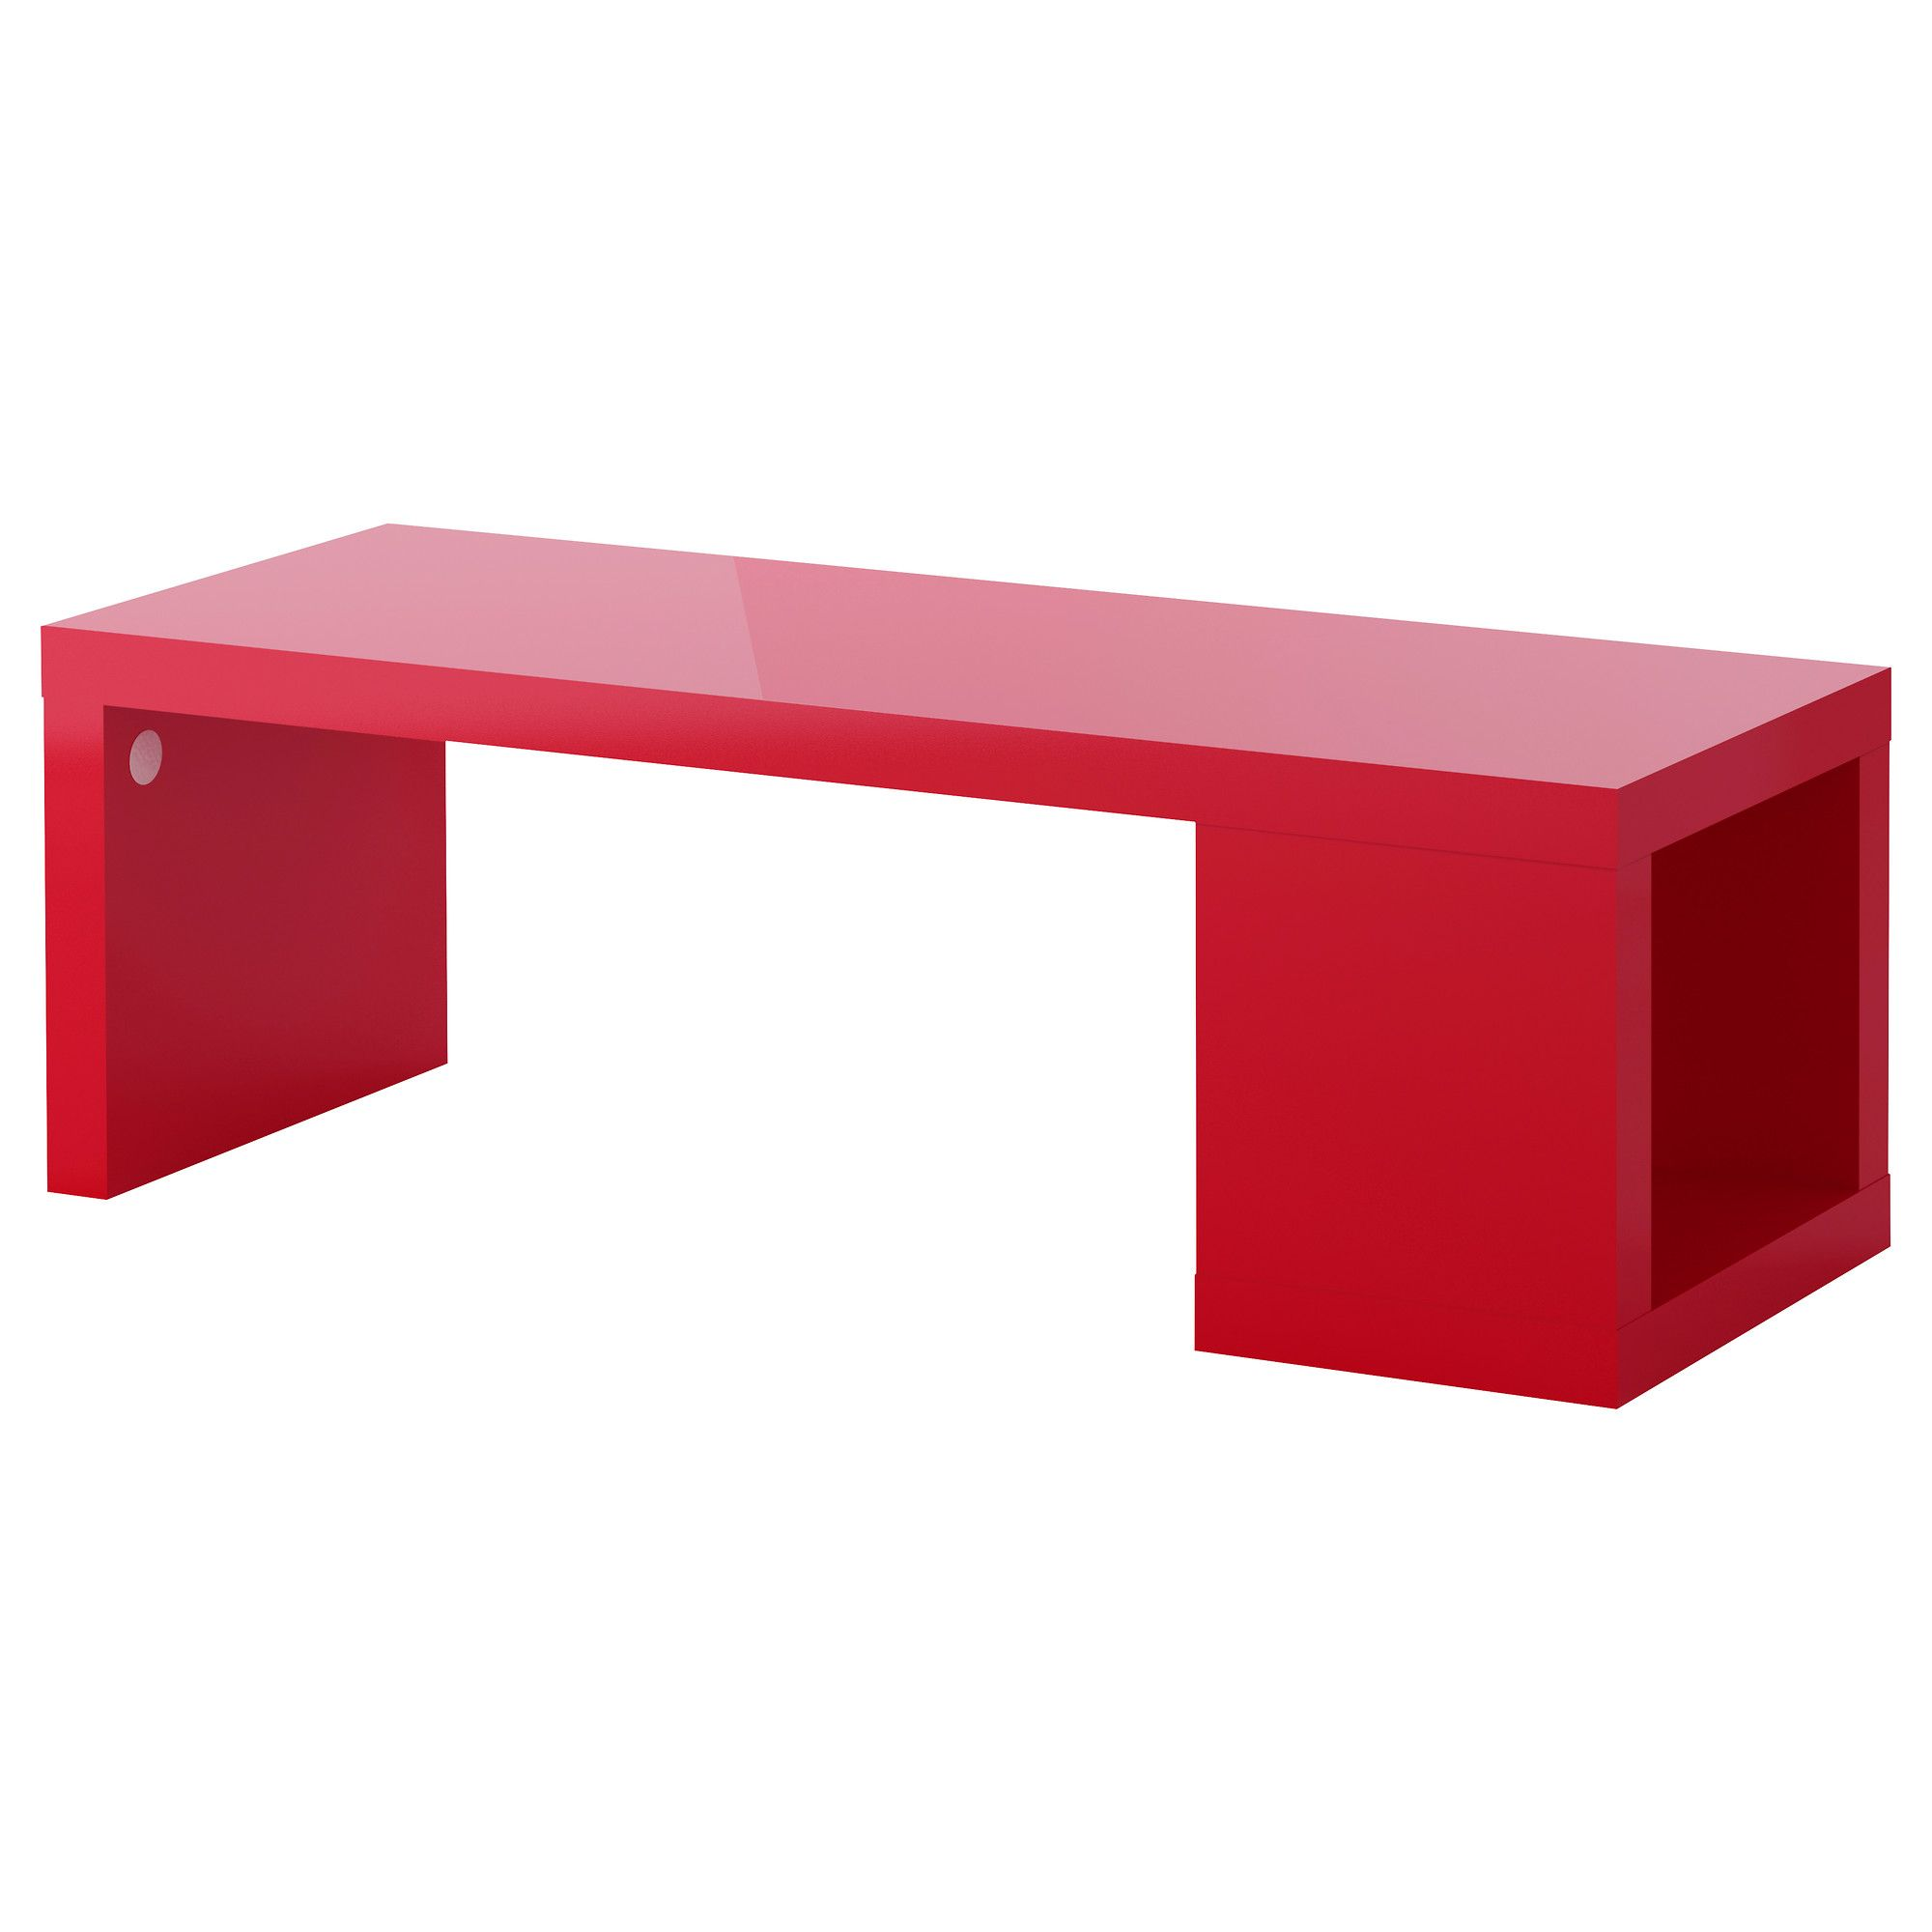 LACK Coffee table high gloss red IKEA This would be an accent